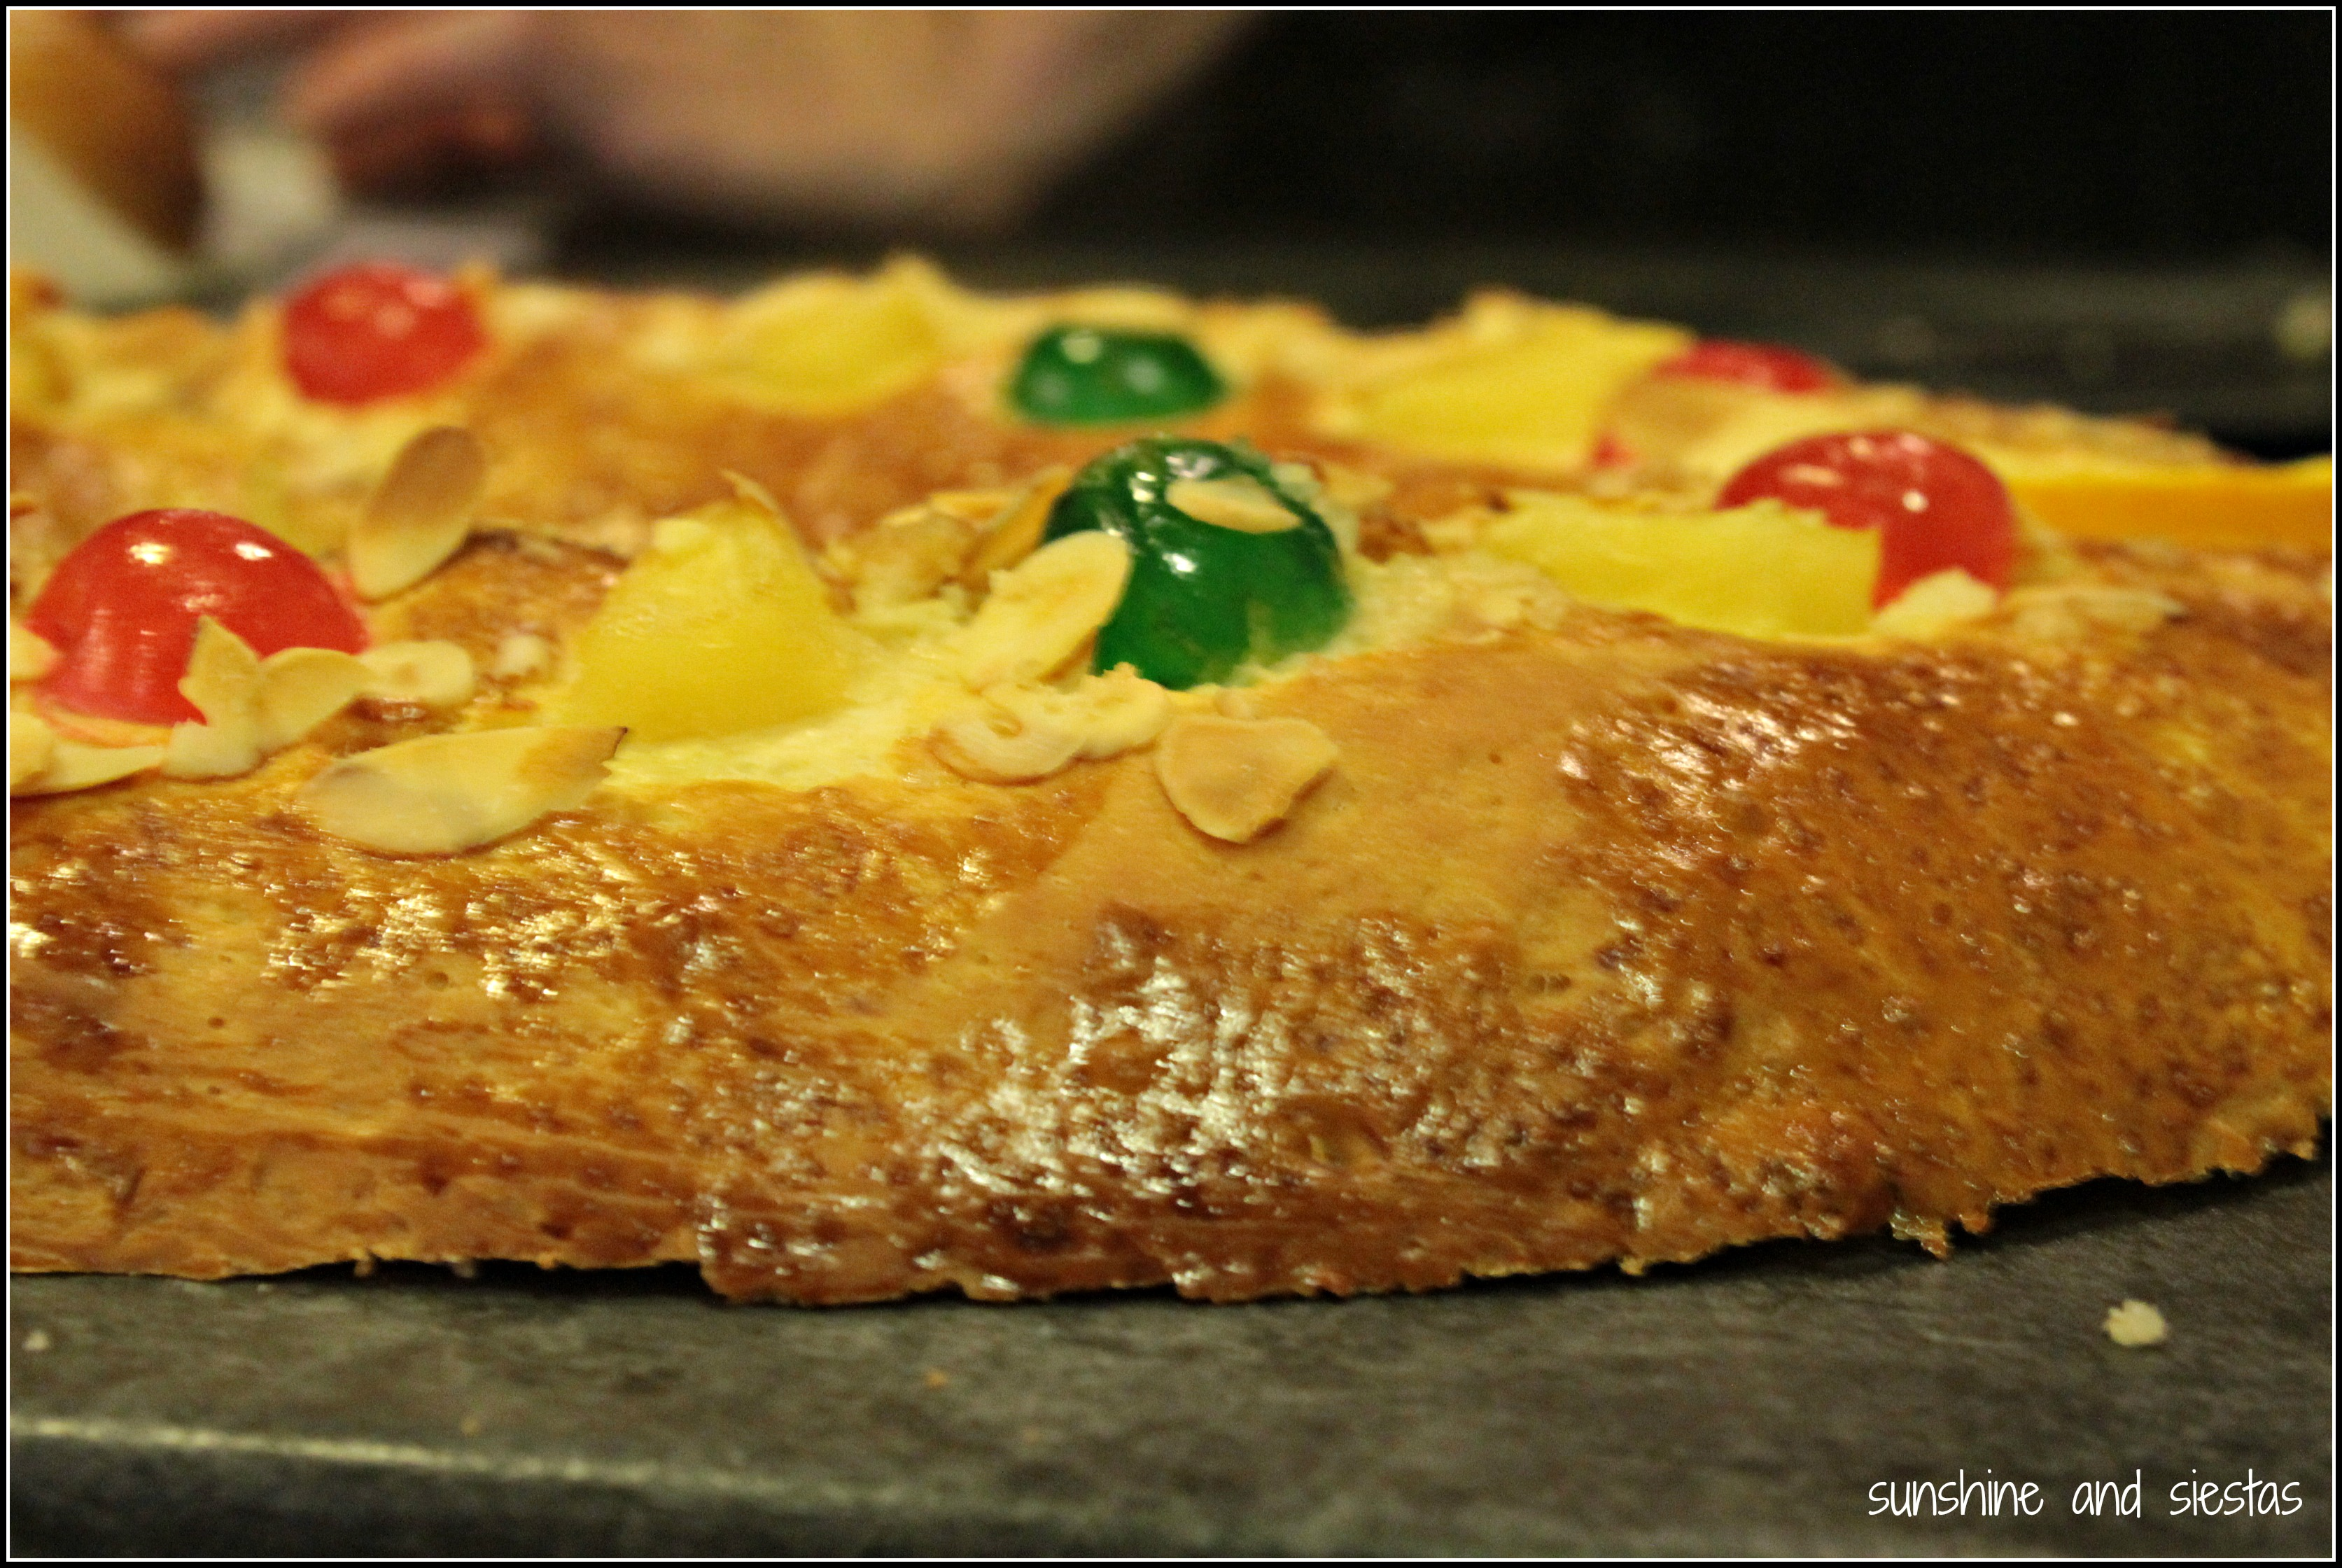 Three kings cake in spain sunshine and siestas an american expat roscon de reyes forumfinder Image collections